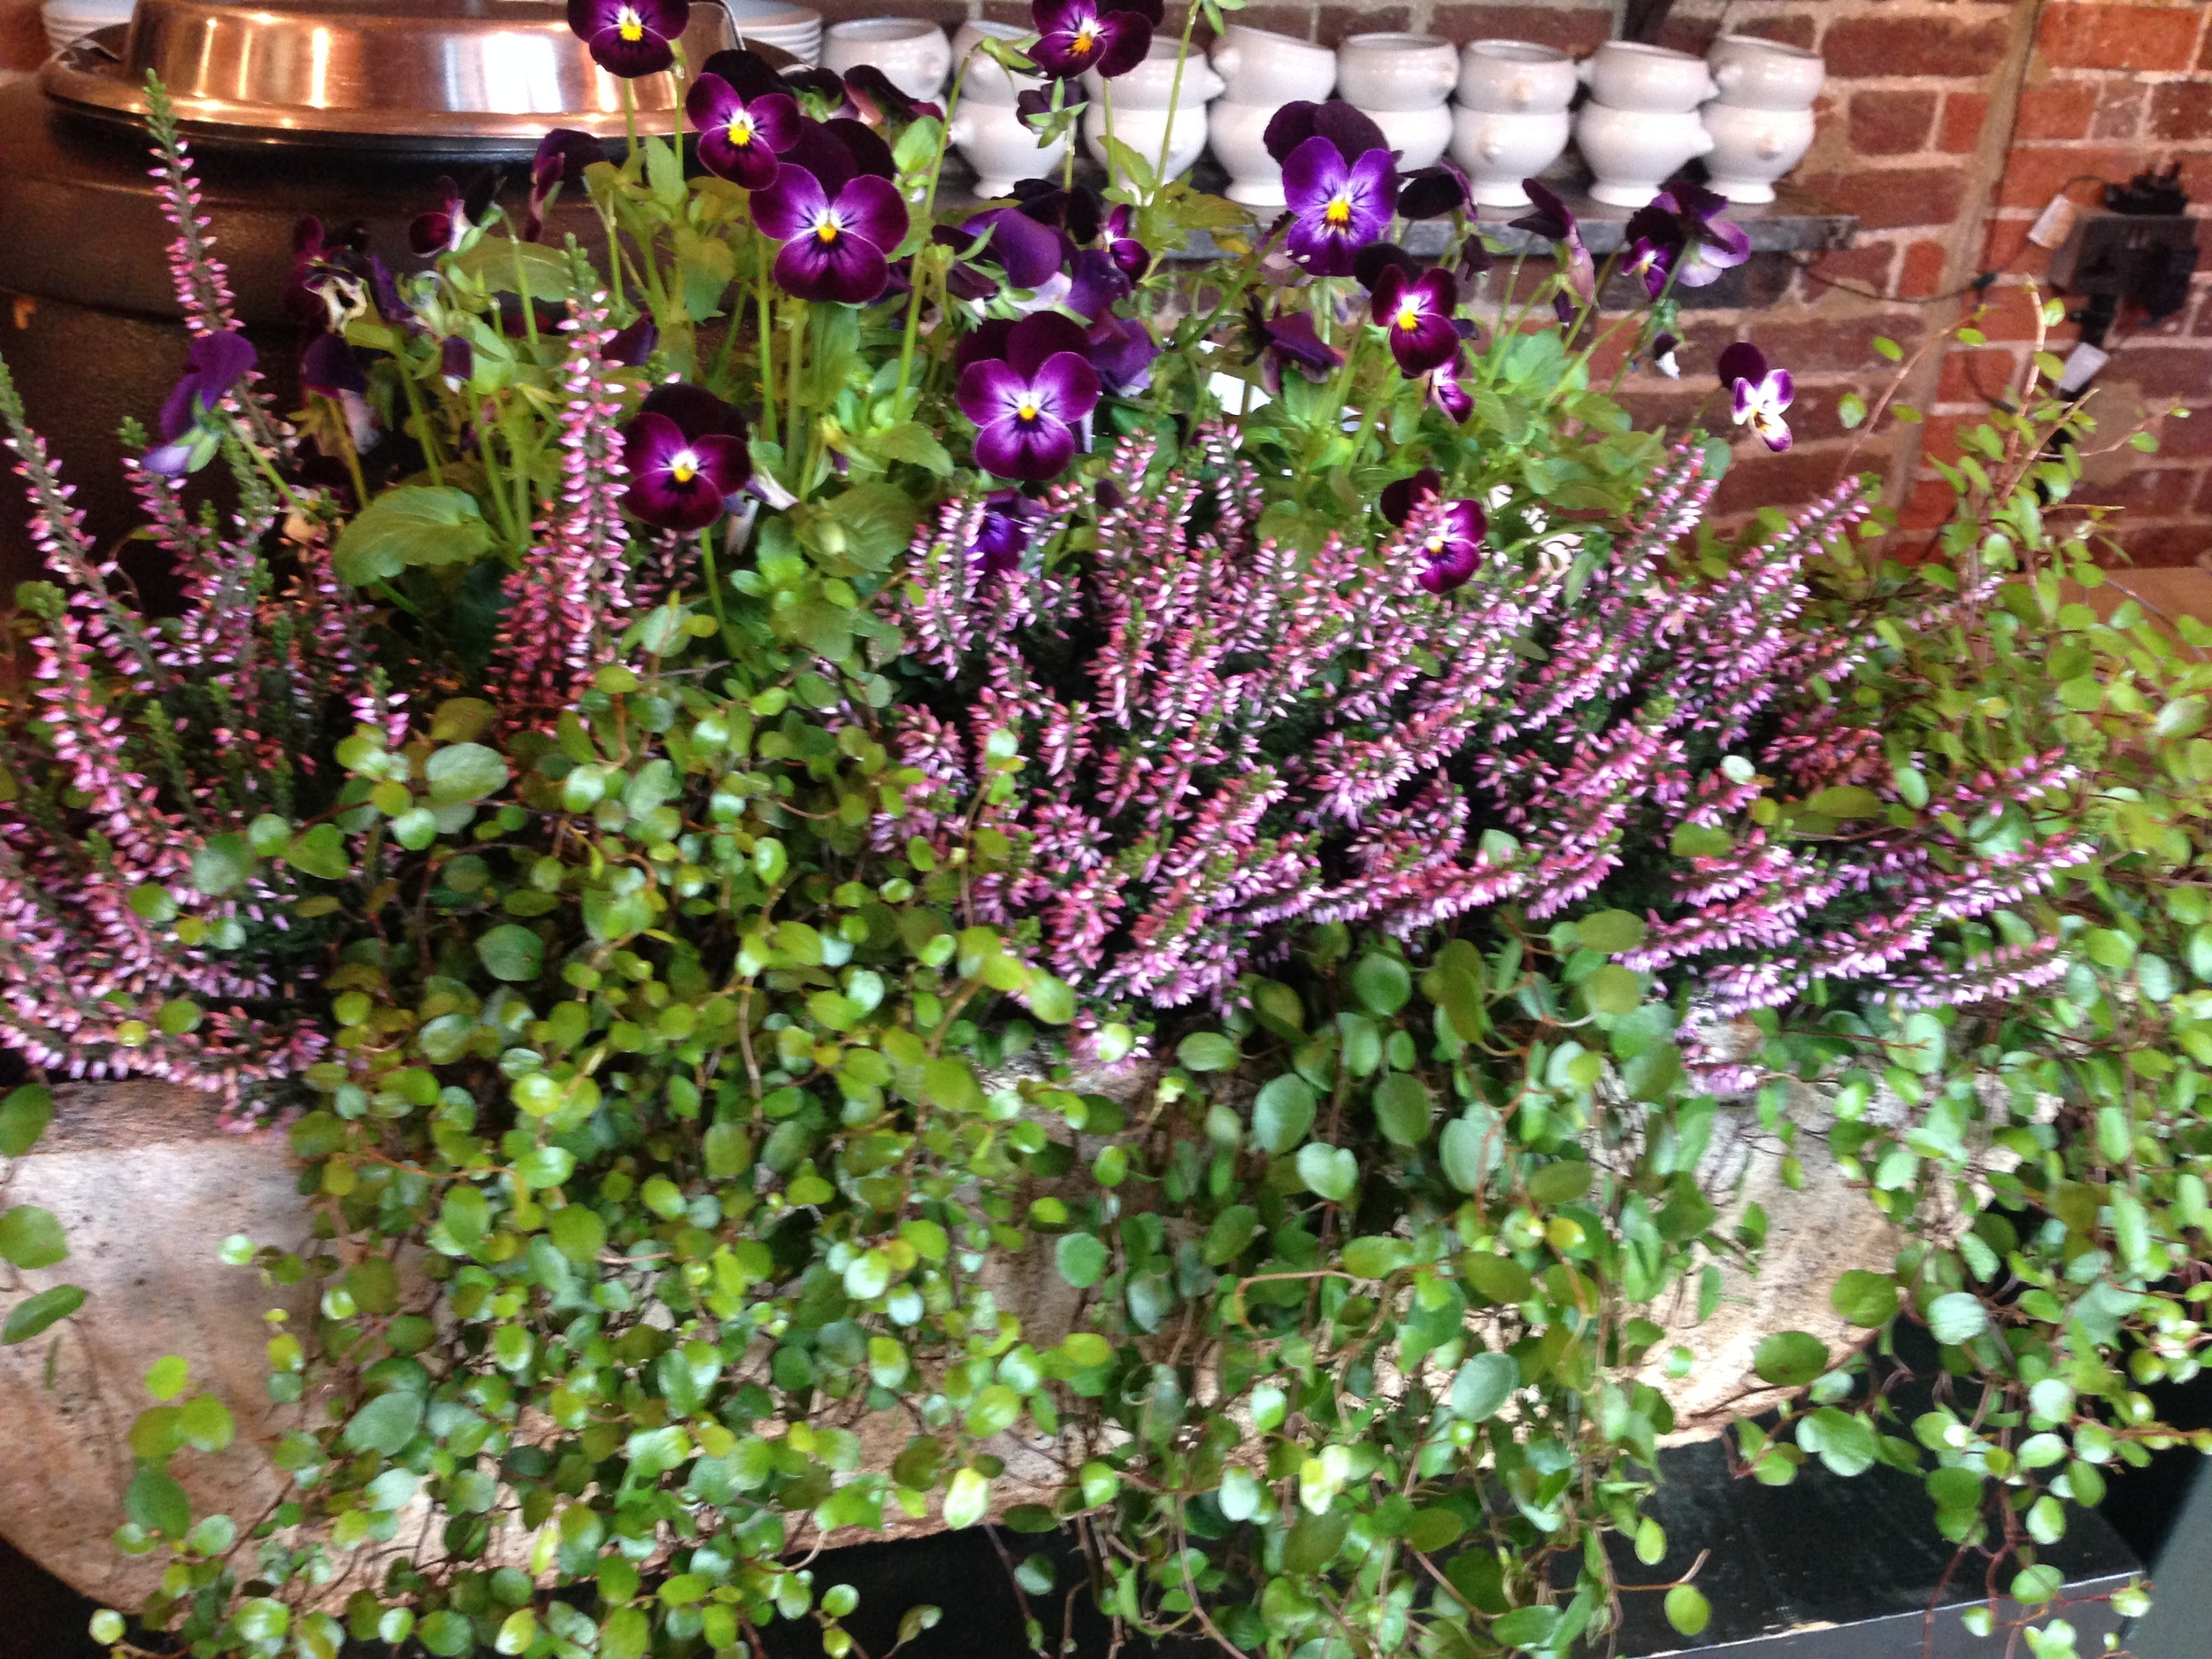 Trough of plants on the counter in the cafe. Did you notice the lovely white French soup bowls on the shelf behind?